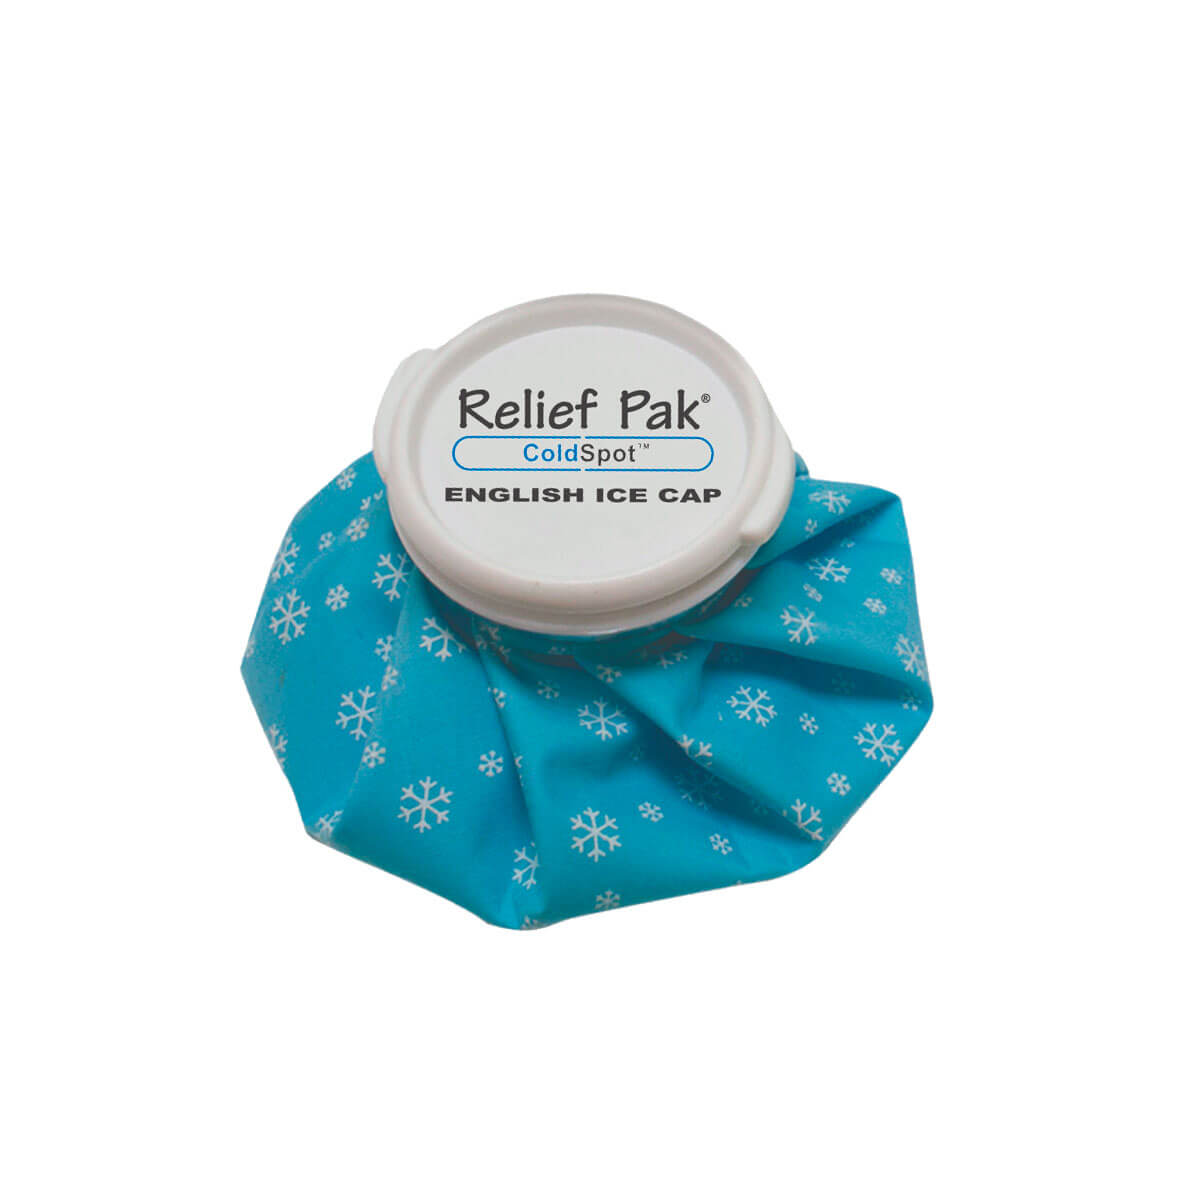 Relief Pak® English Ice Cap - Reusable Ice Bag 6